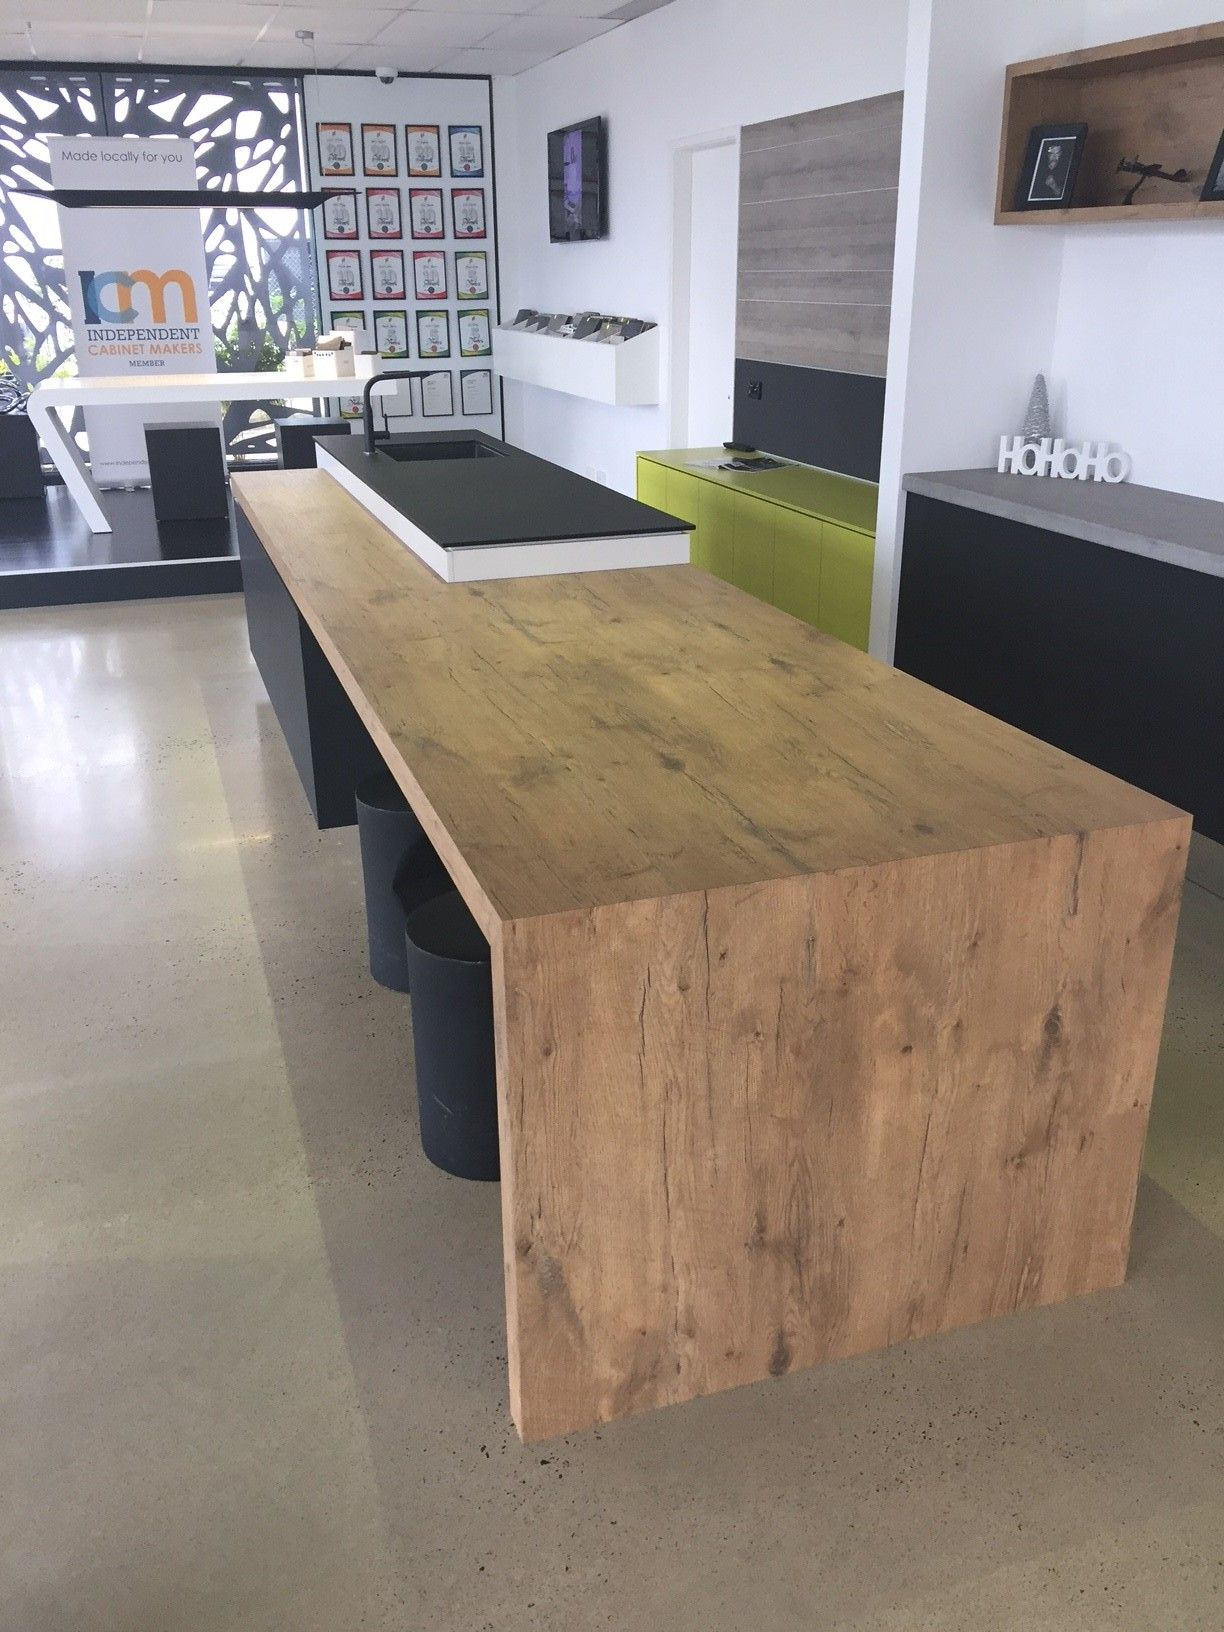 Duropal Pale Lancelot Oak Laminate Used For This Display